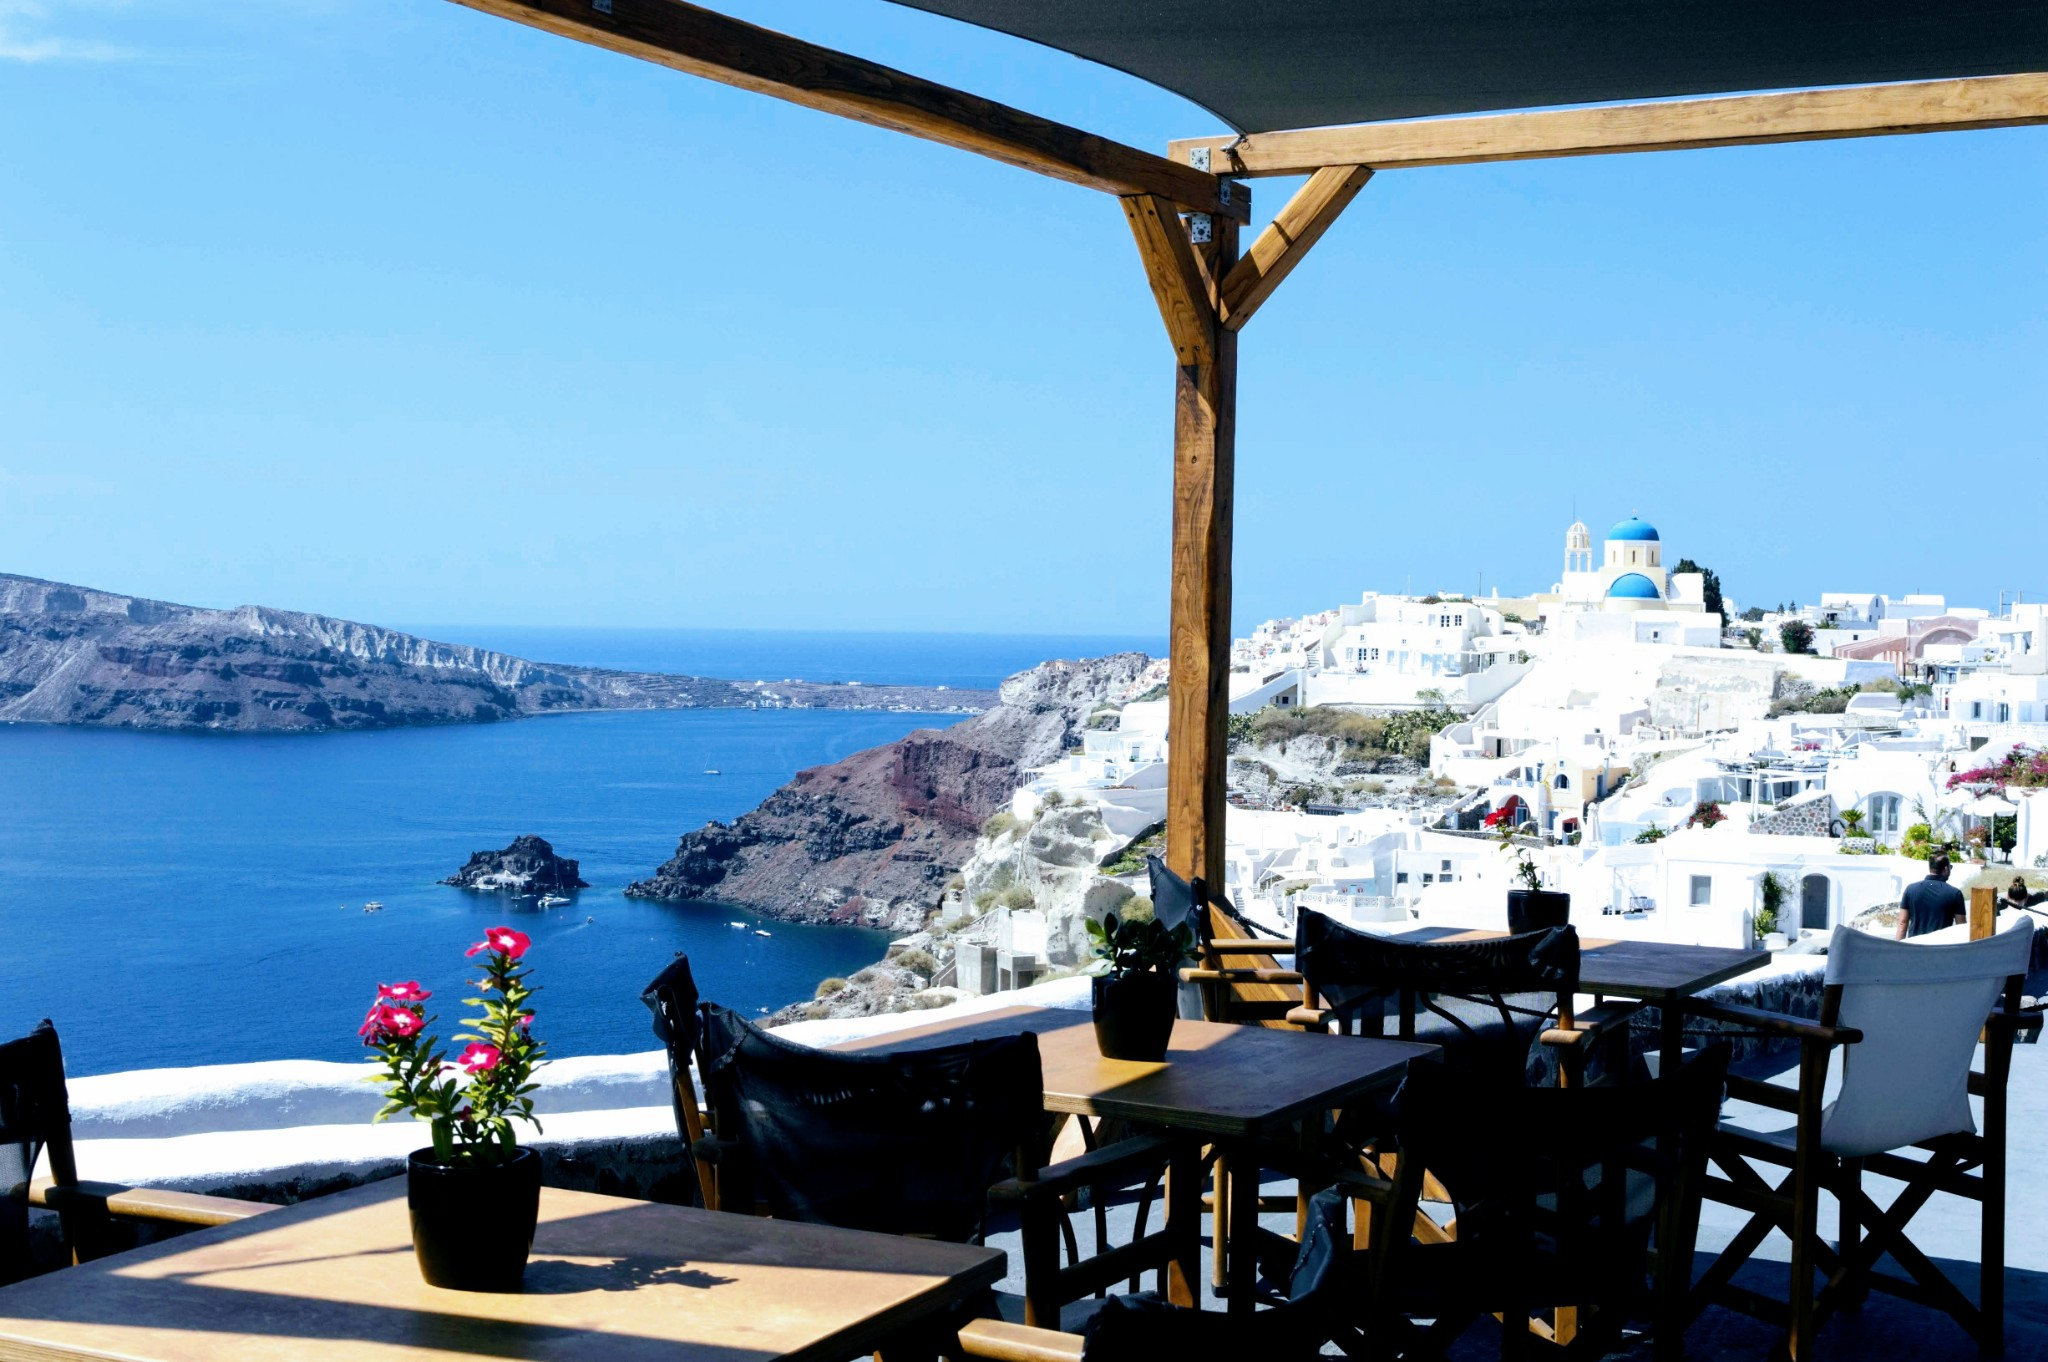 View Lunch at Mes Amis - Honeymoon Part 2 - Oia in Santorini Greece is beautiful with its pretty caldera view, sunsets, windmills and quaint pedestrian streets, we headed here for our Honeymoon Part 2! - Greek Island, Europe - Veritru